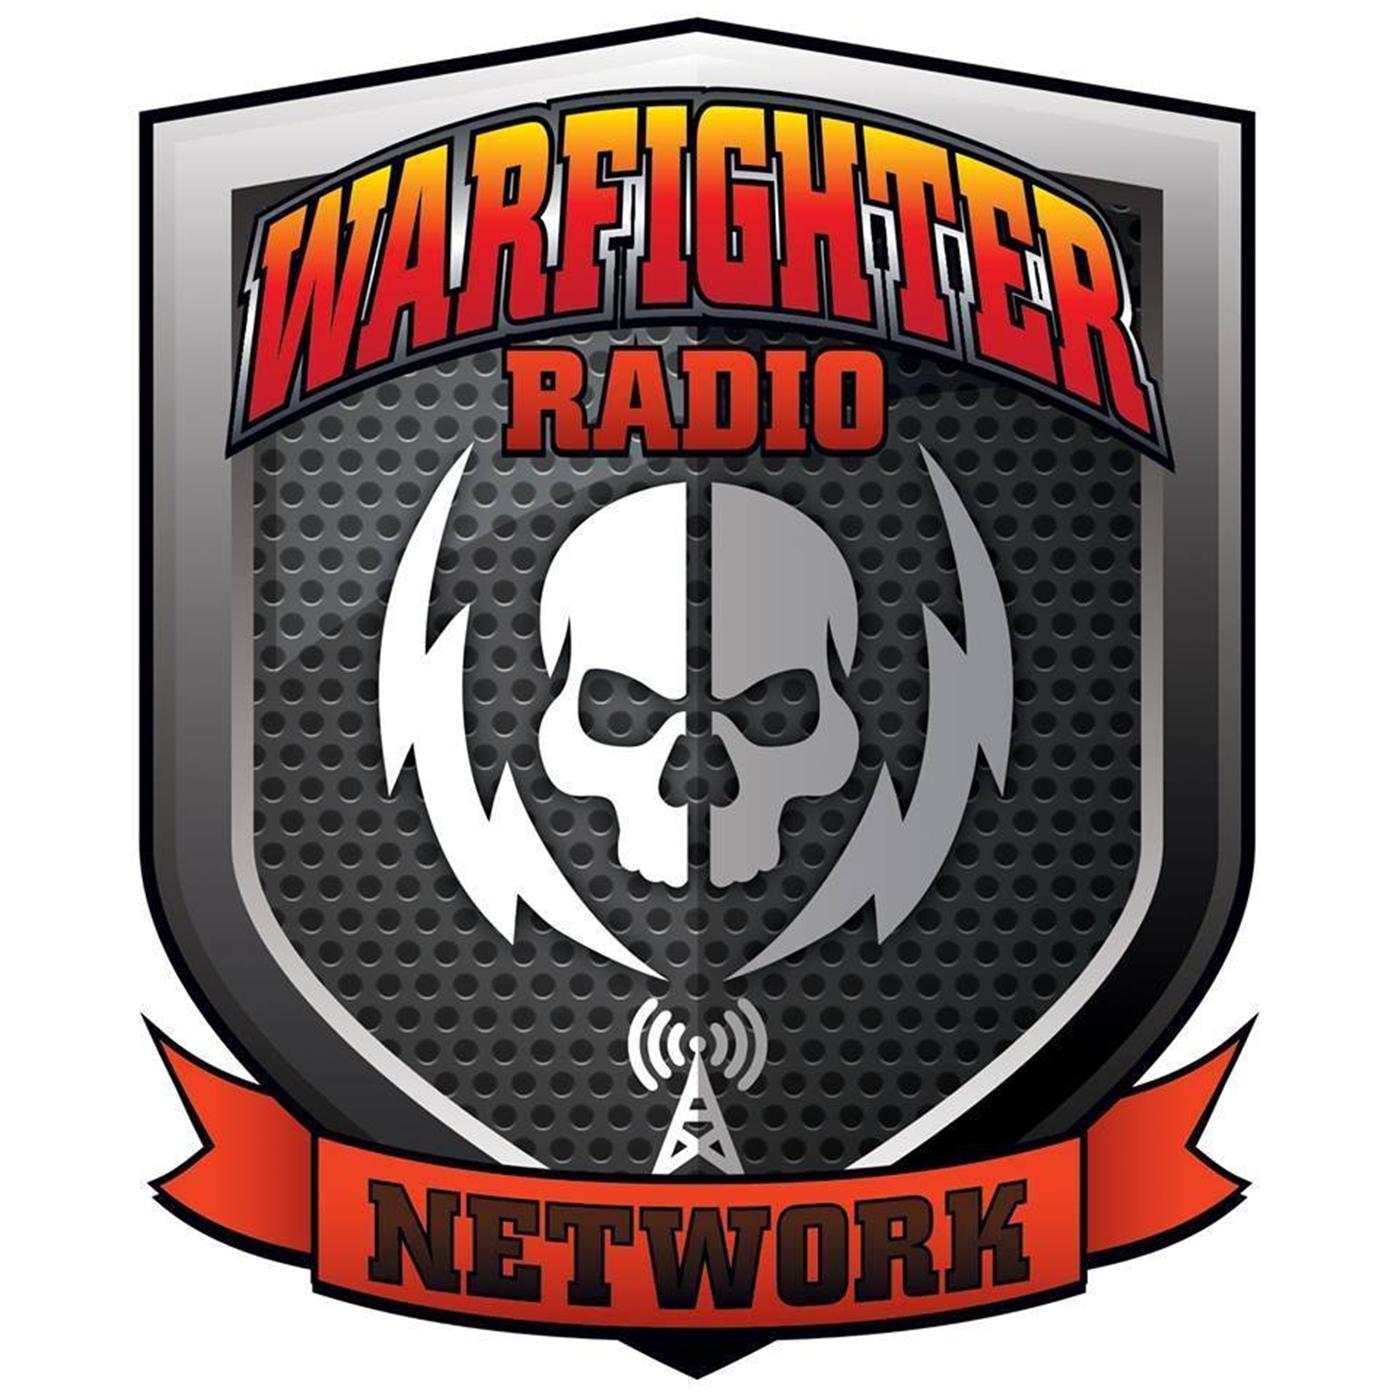 Warfighter Radio Network